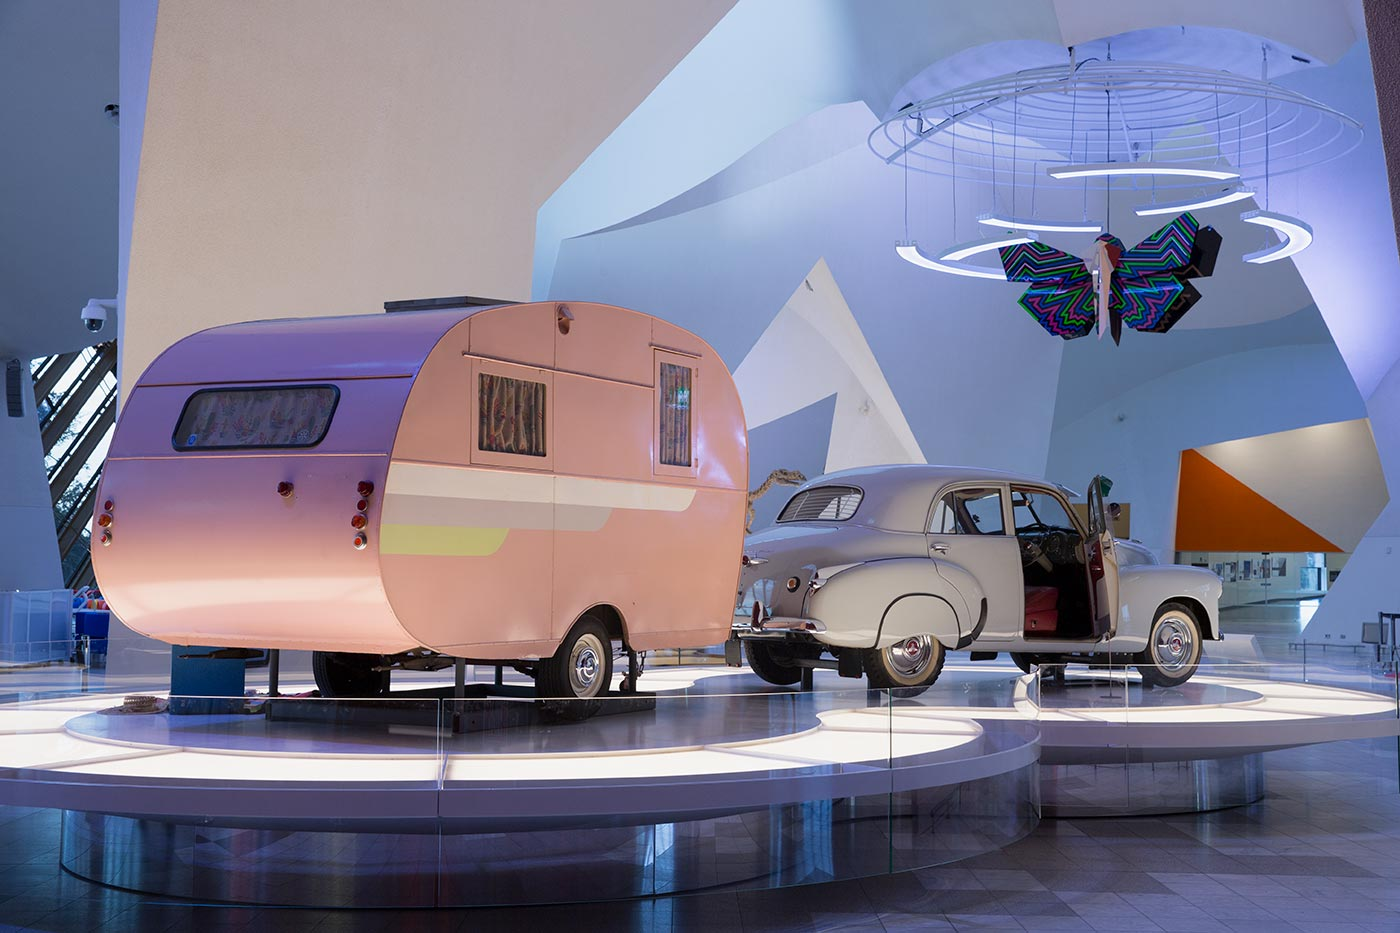 An FJ Holden and pink Propert caravan on display inside the National Museum of Australia.